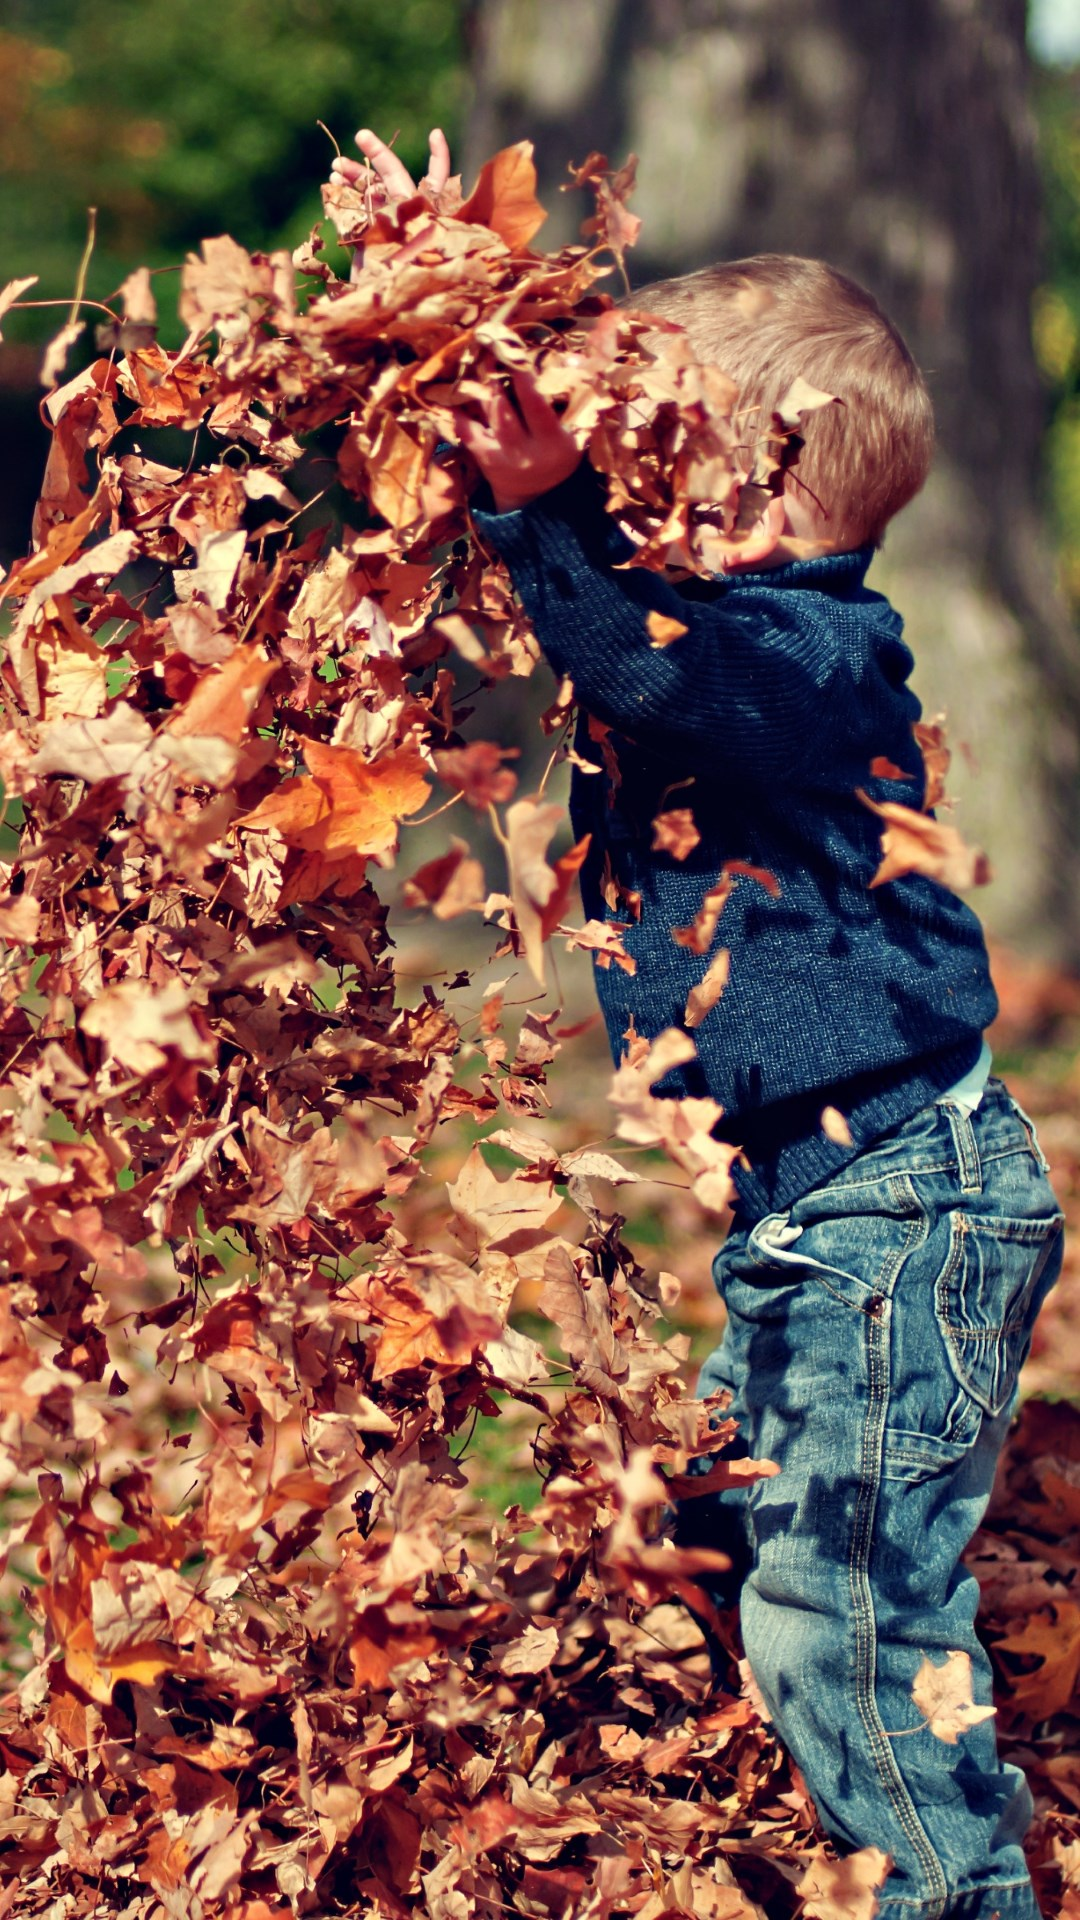 The child is playing with leaves wallpaper 1080x1920